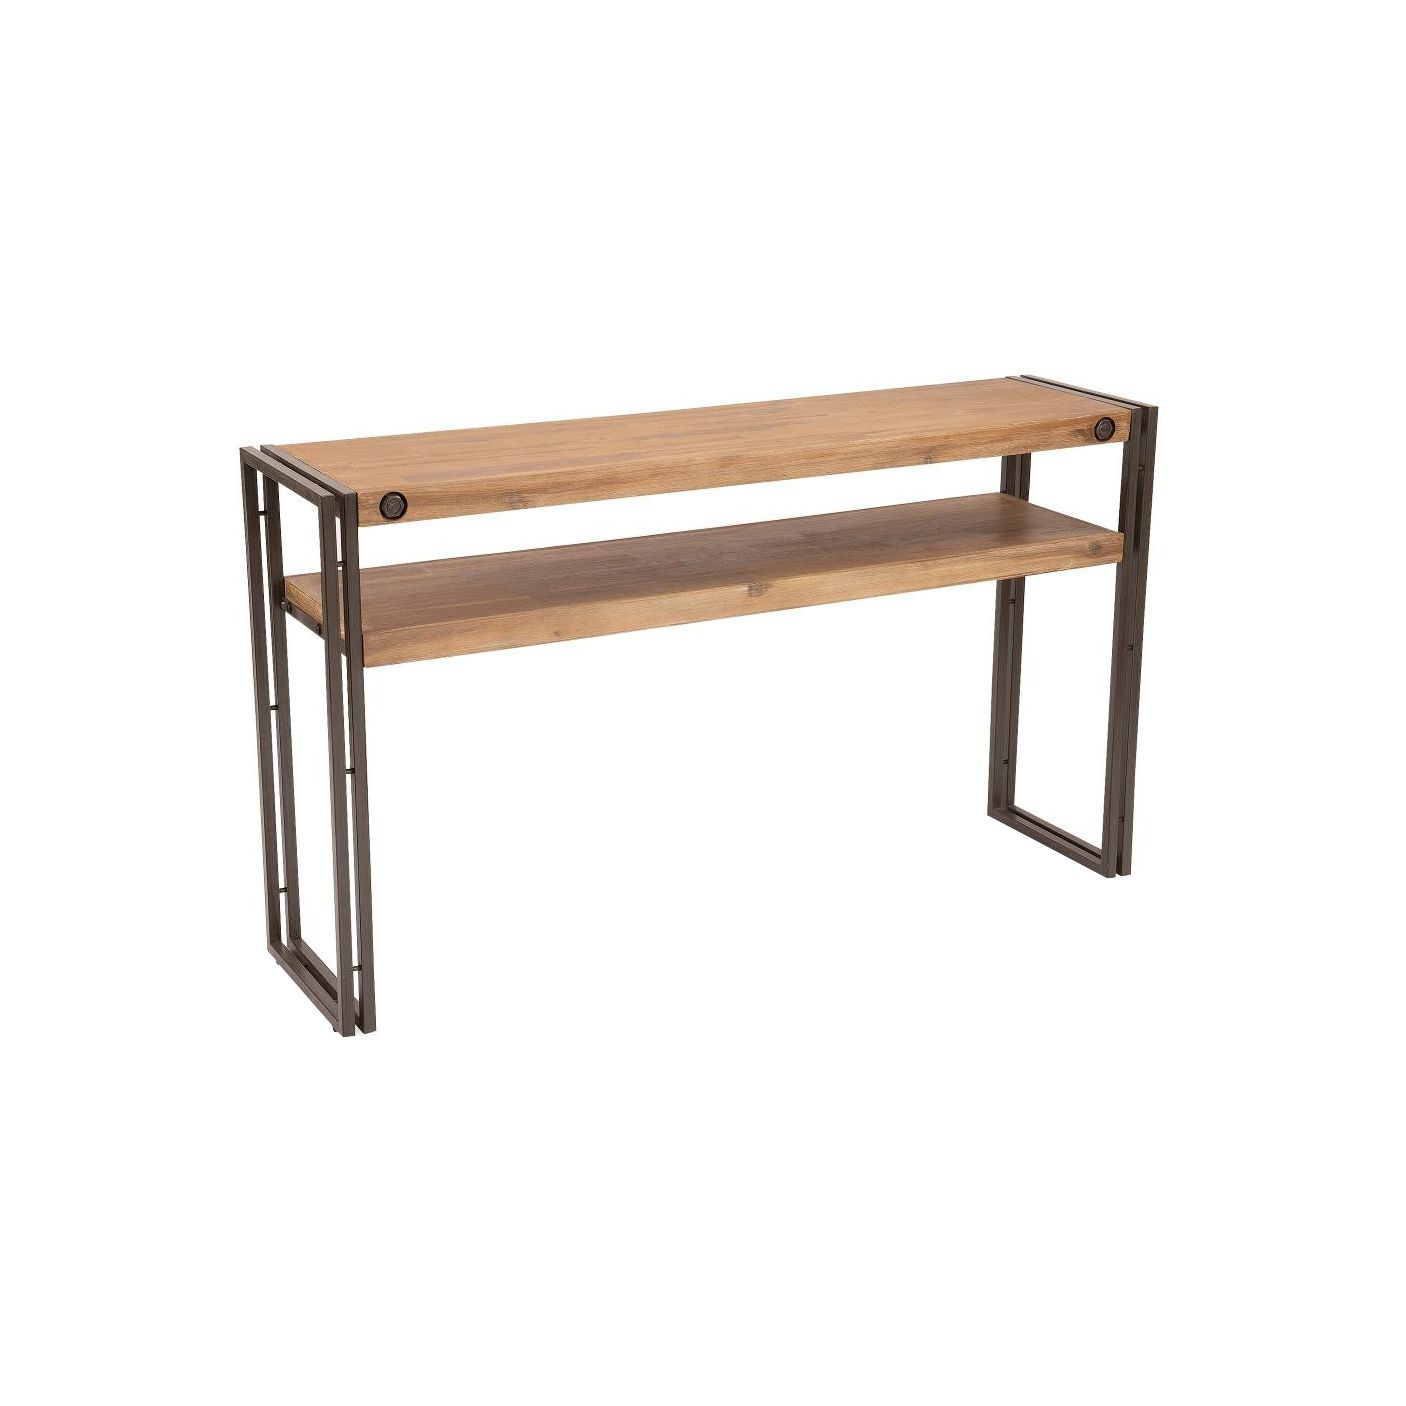 In solid acacia with dark metal accents this console table embraces